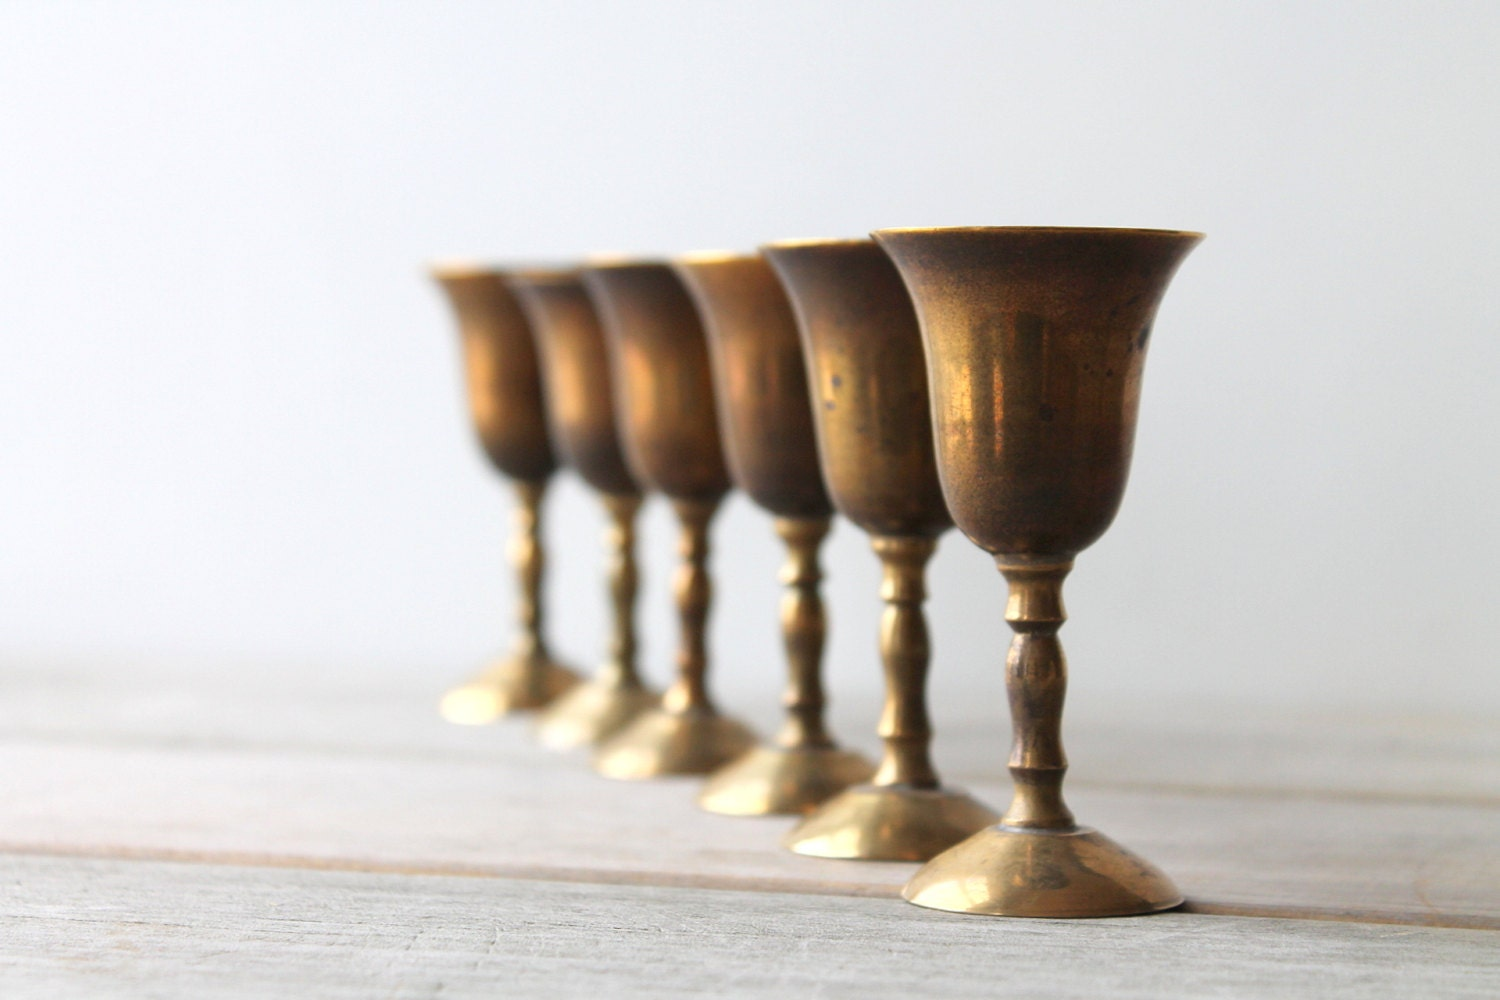 Vintage brass cordial set / small goblets / global home decor / ethnic / tribal / eclectic home / gift idea / rustic glam / regency - WhiteDogVintage